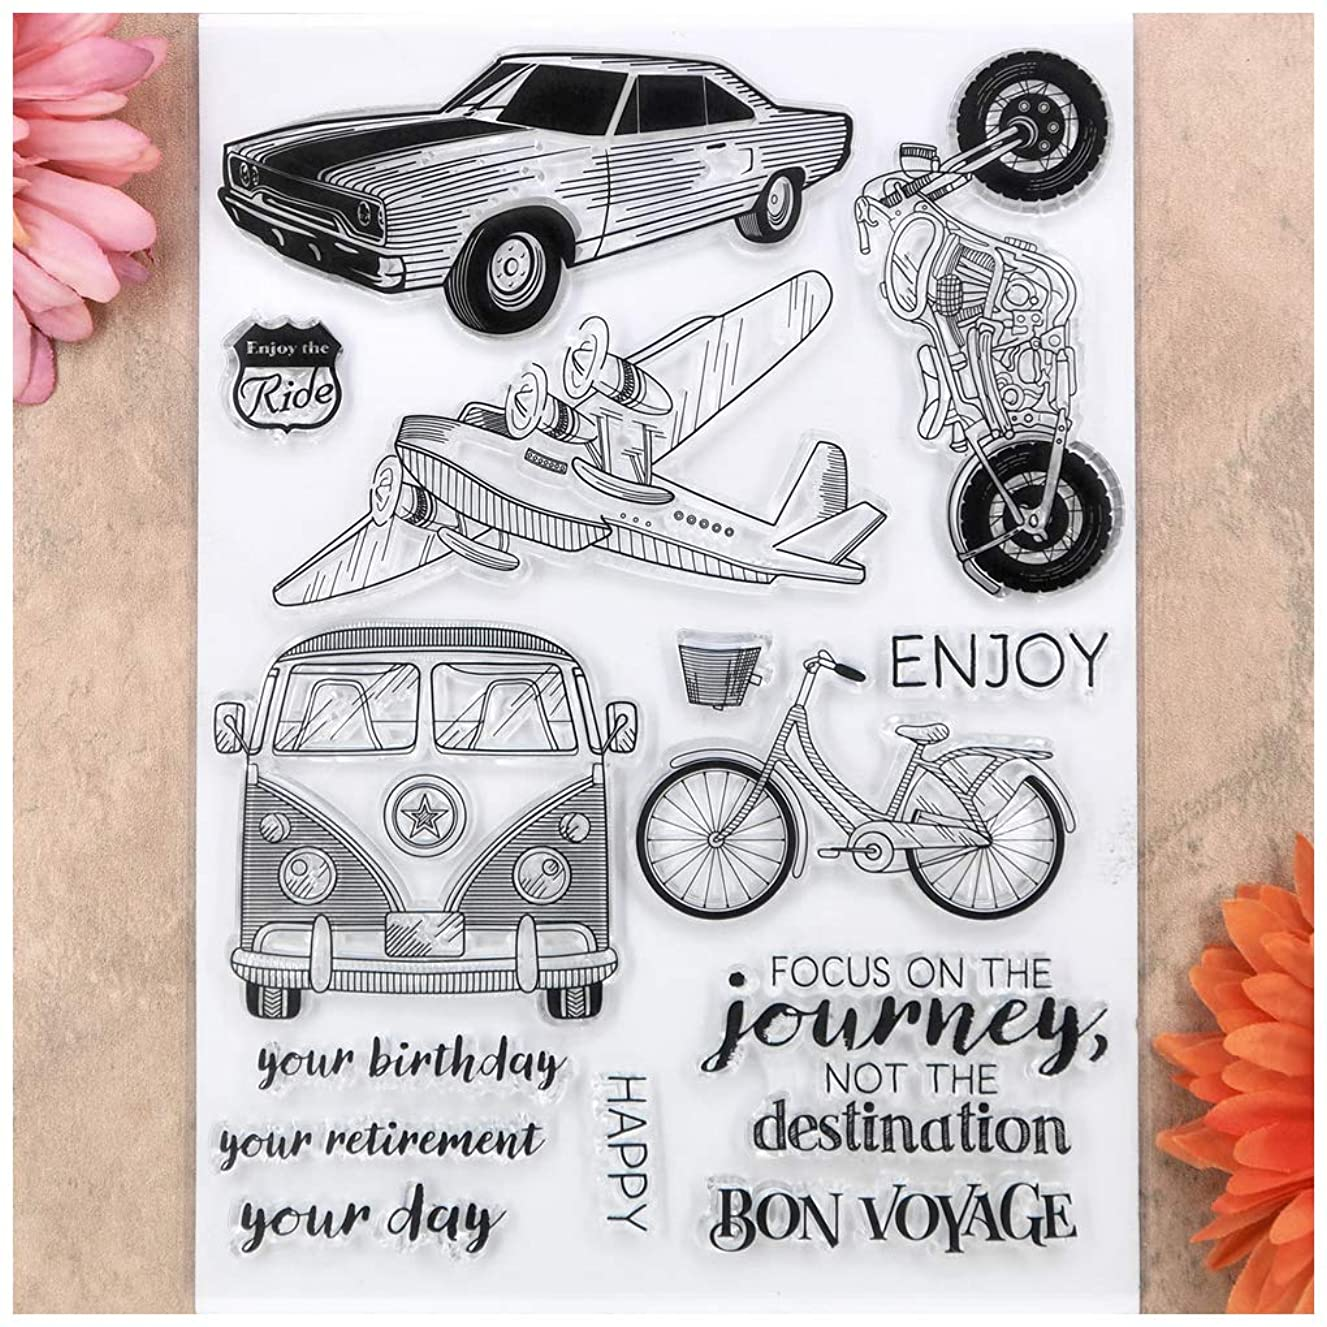 Kwan Crafts Enjoy the Ride Happy Birthday Car Bicycle Clear Stamps for Card Making Decoration and DIY Scrapbooking fbydb2454